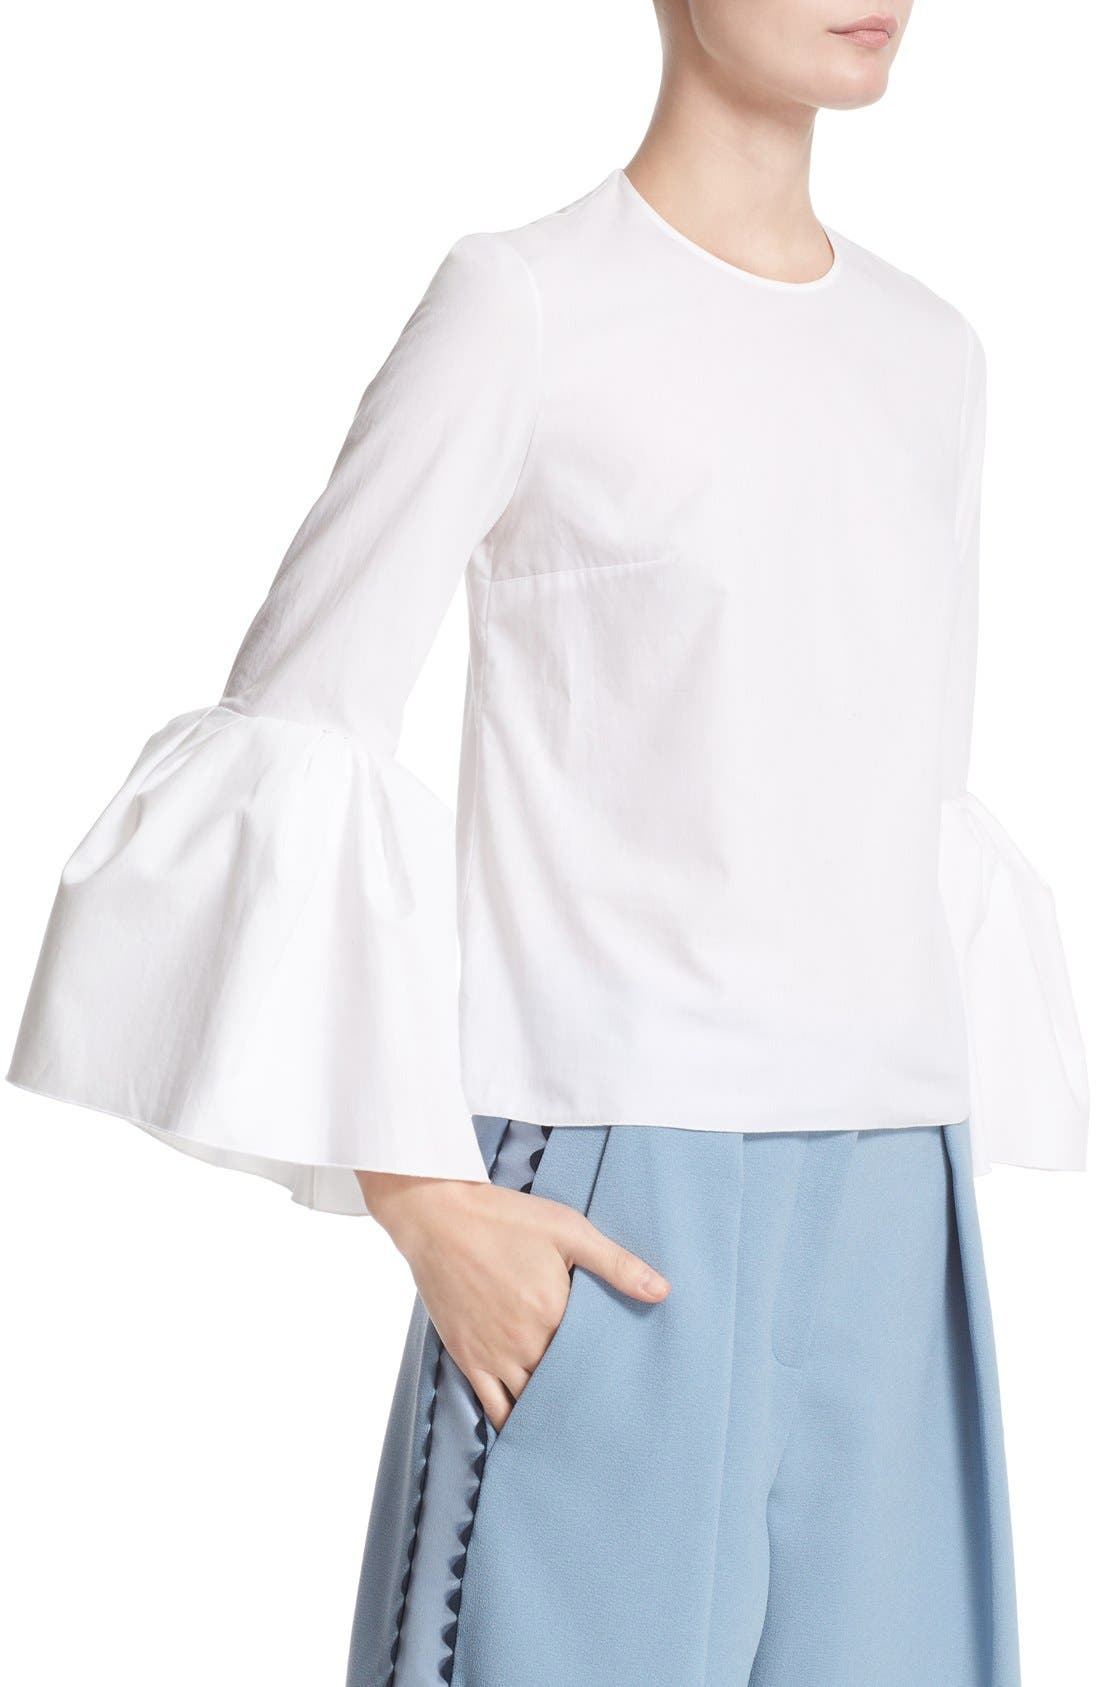 Truffaut Bell Sleeve Top,                             Alternate thumbnail 6, color,                             WHITE